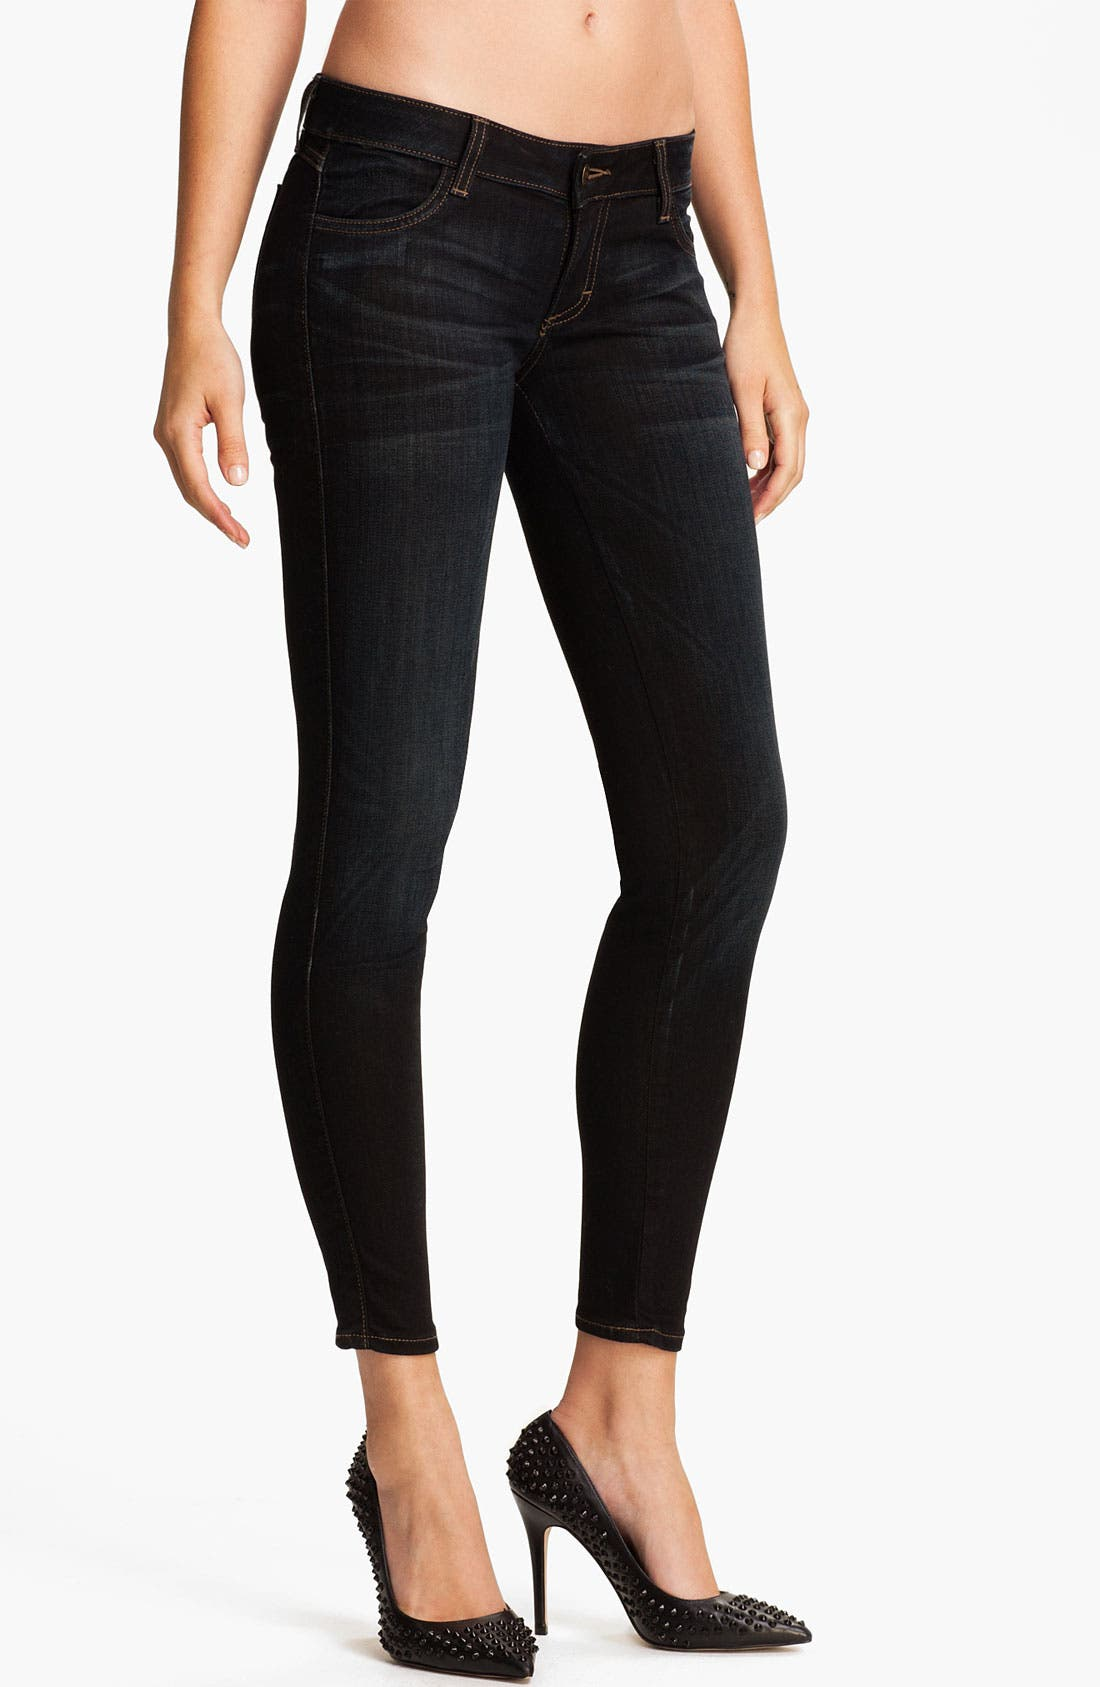 Main Image - Siwy 'Hannah' Slim Crop Stretch Jeans (Ride)